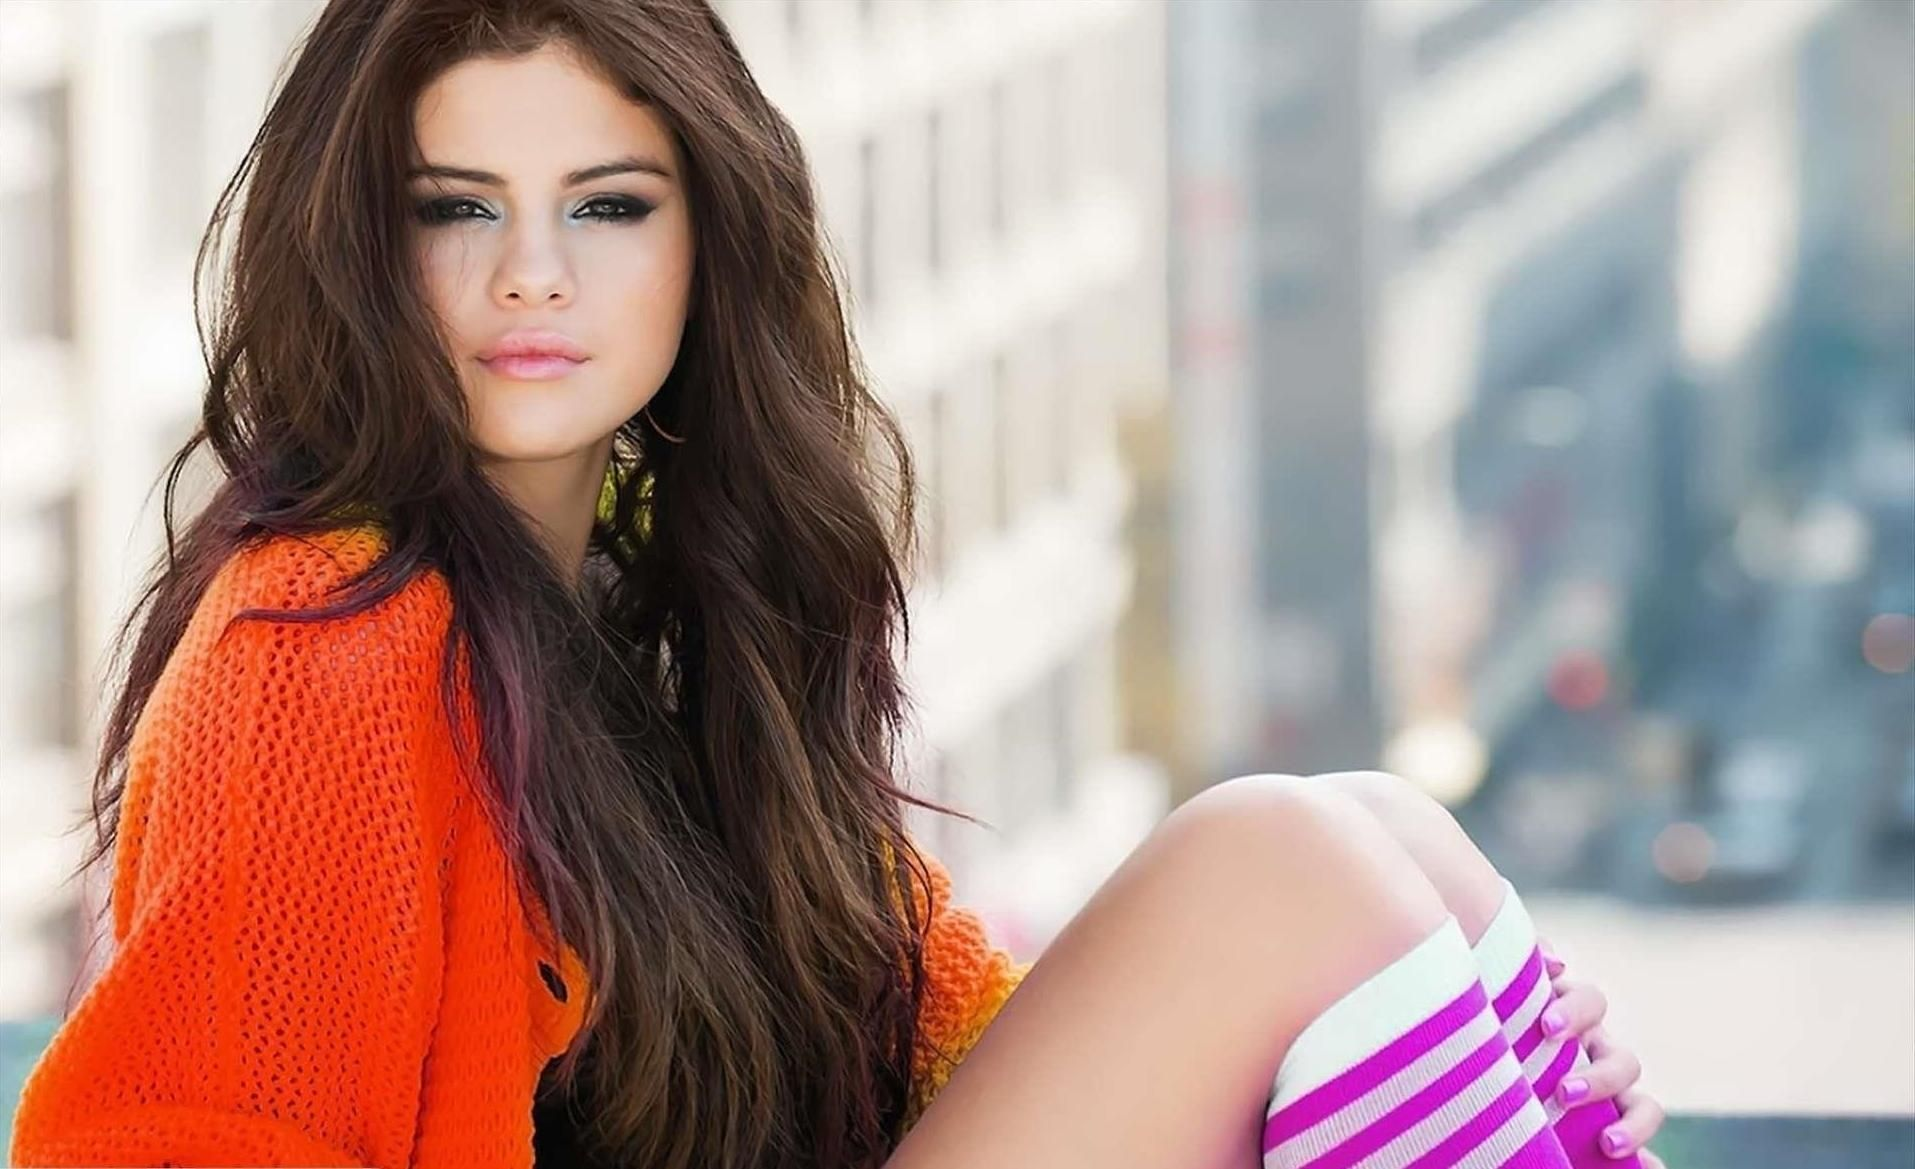 10 New Selena Gomez Hd Wallpapers FULL HD 1080p For PC Background 1915x1169